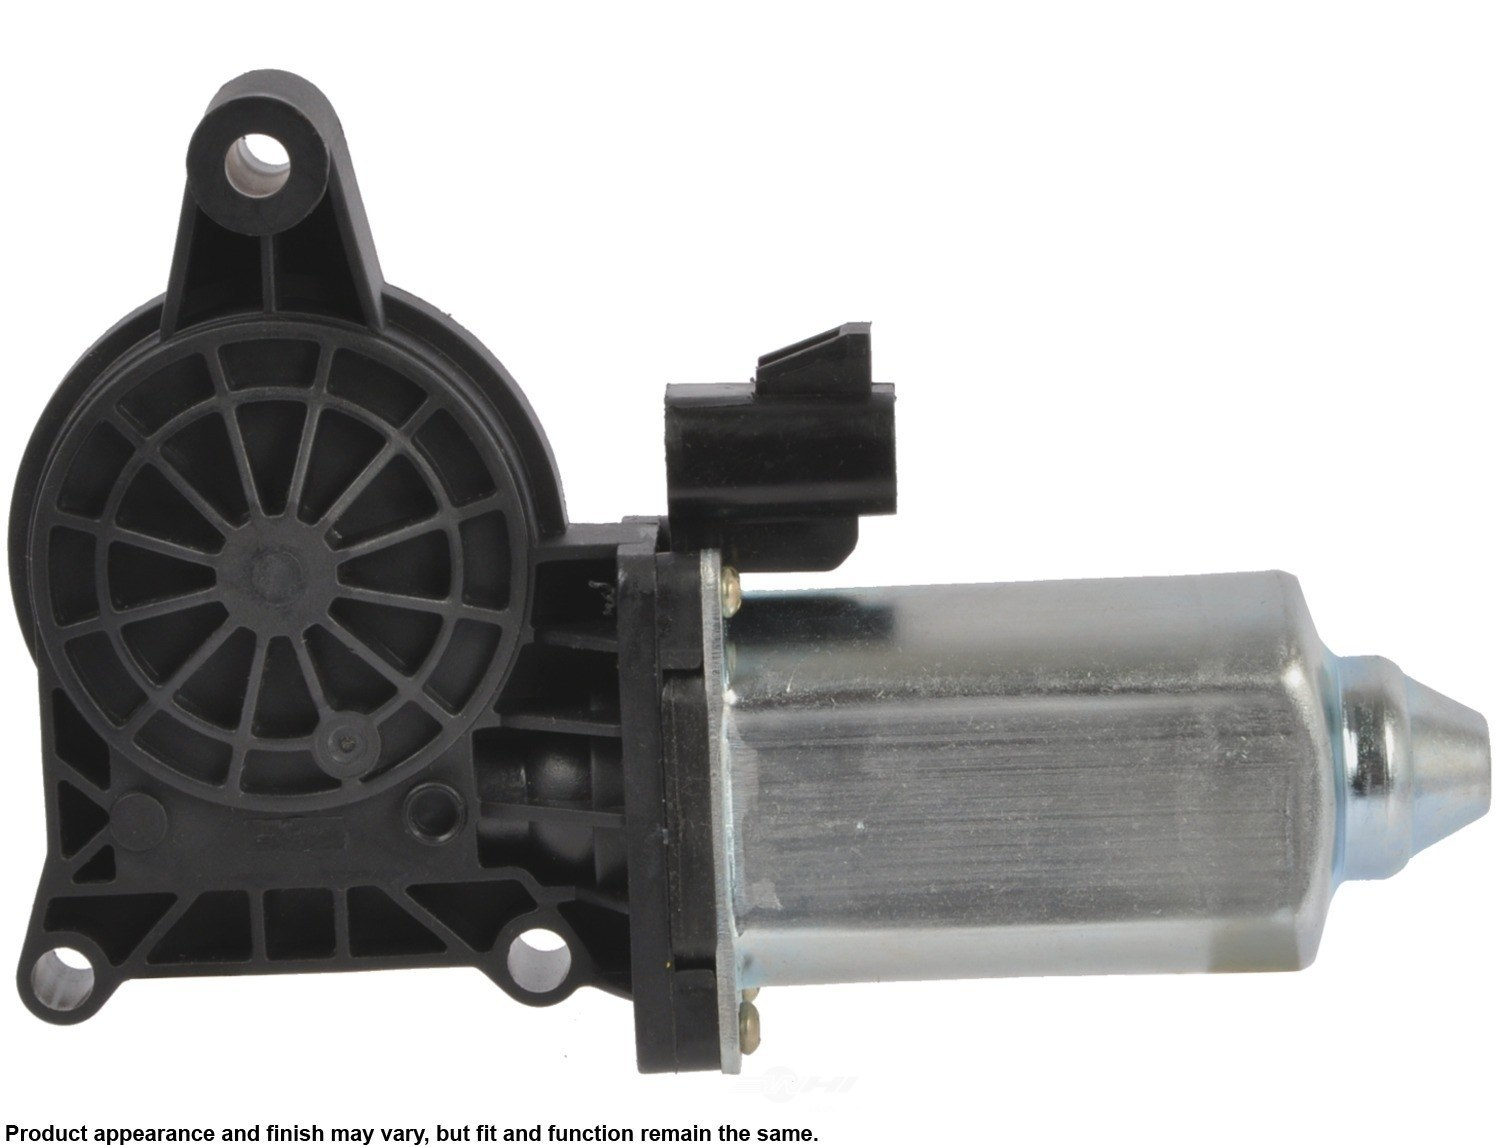 CARDONE NEW - Window Lift Motor (Rear Right) - A1S 82-10610